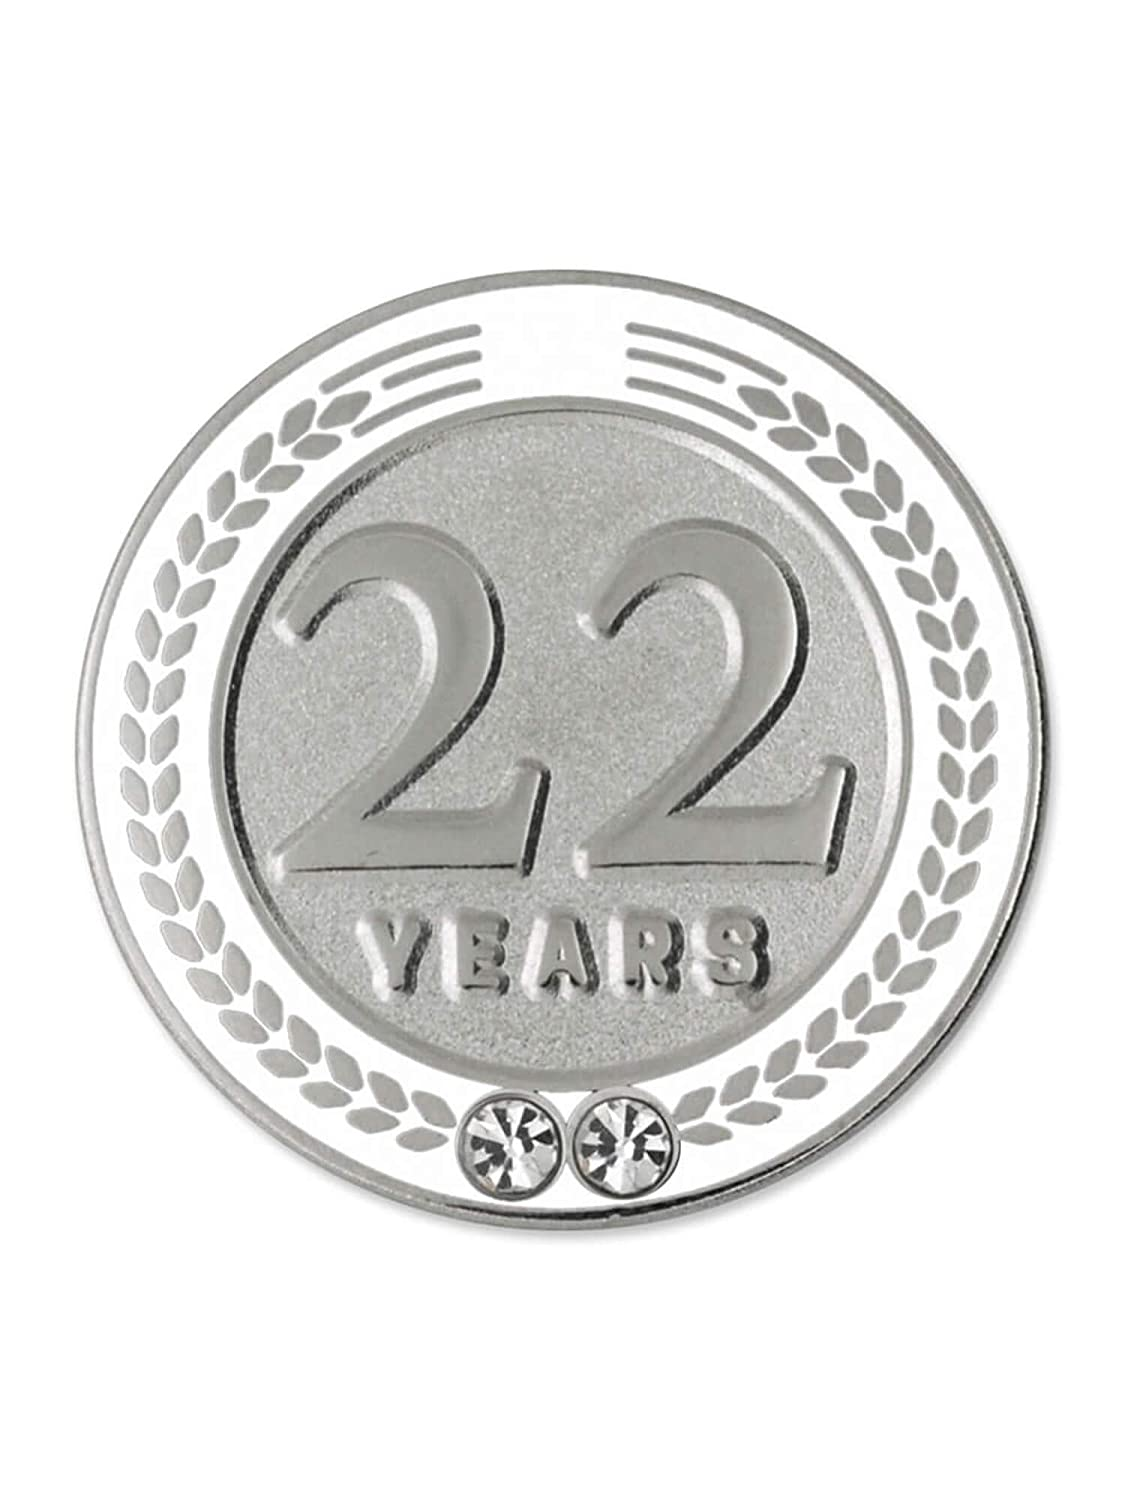 PinMart 22 Years of Service Award Employee Recognition Gift Lapel Pin White